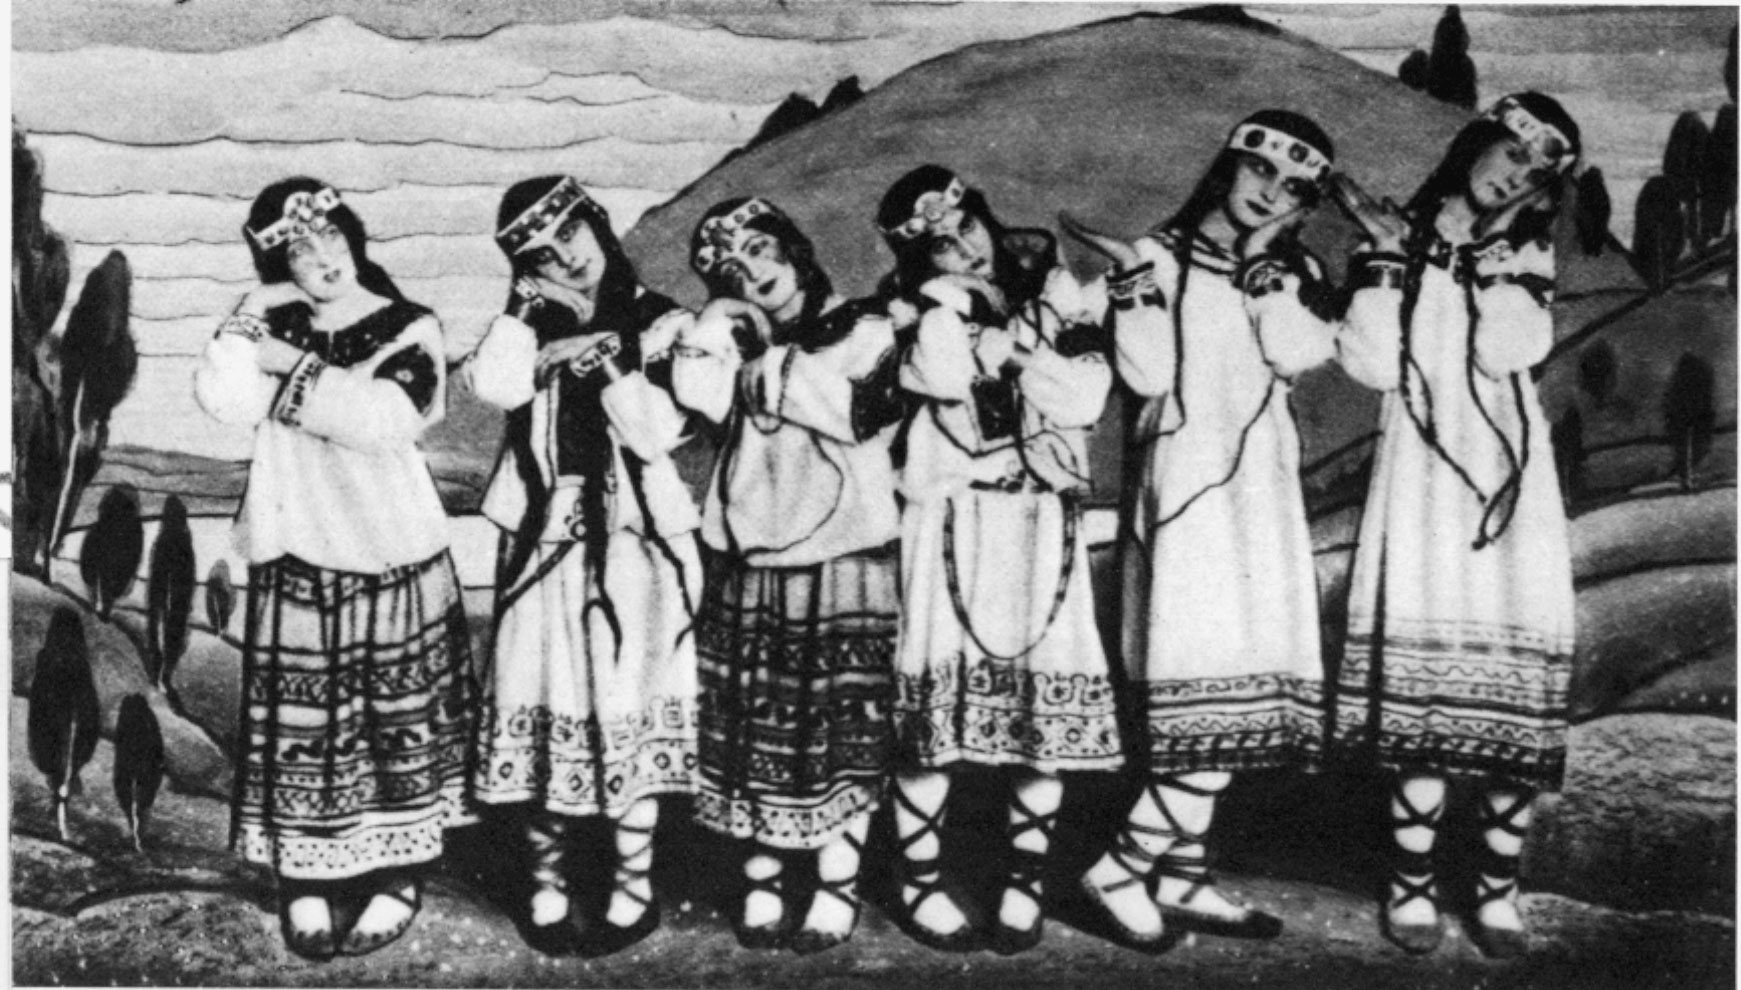 Dance of the Adolescent Girls in The Rite of Spring, 1913.